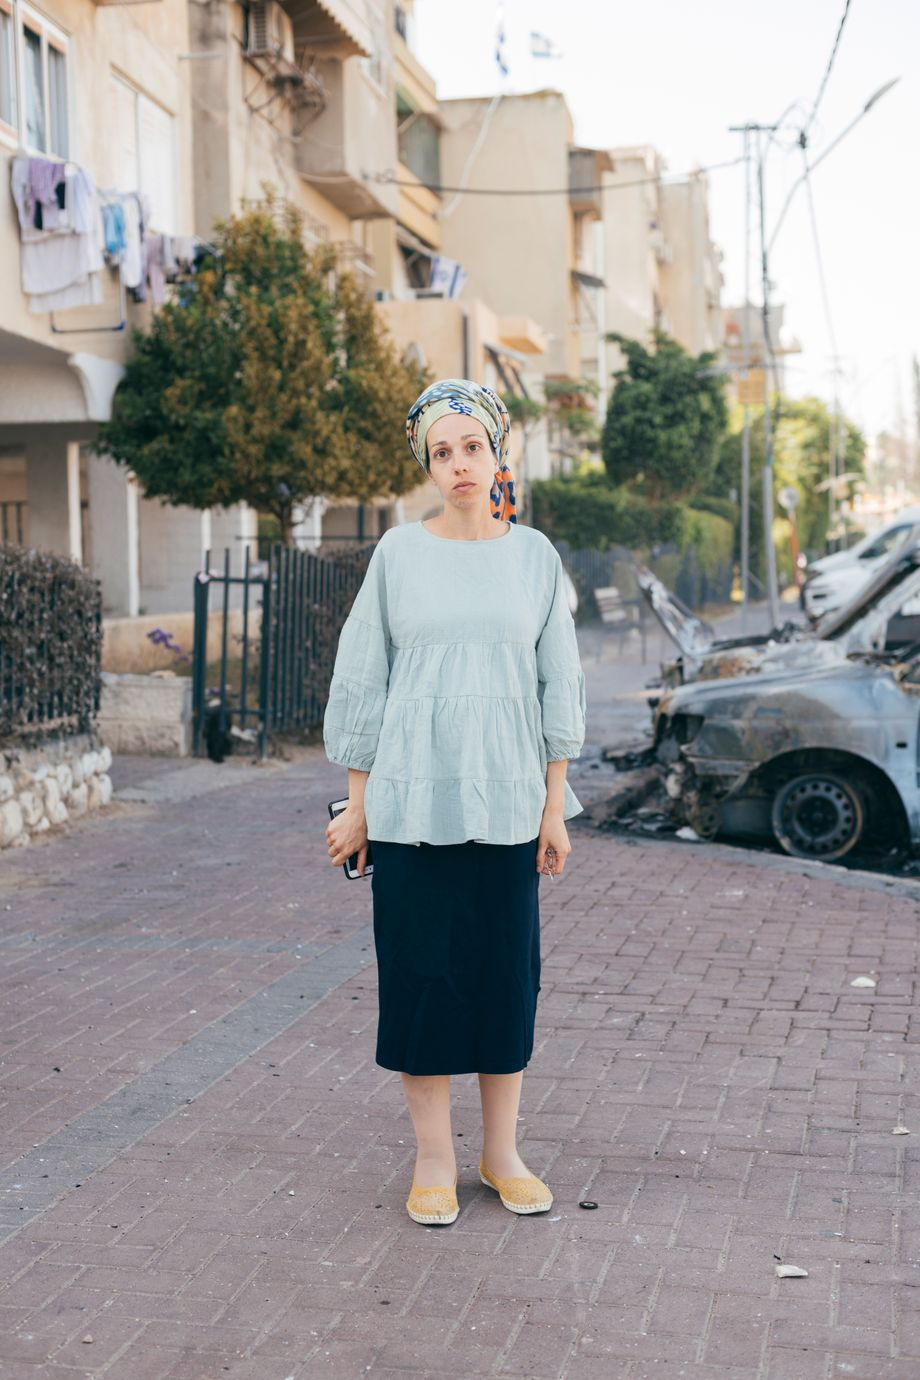 Gil Gabay, a resident of Lod who lives in a building home to both Jewish and Arab Israeli families